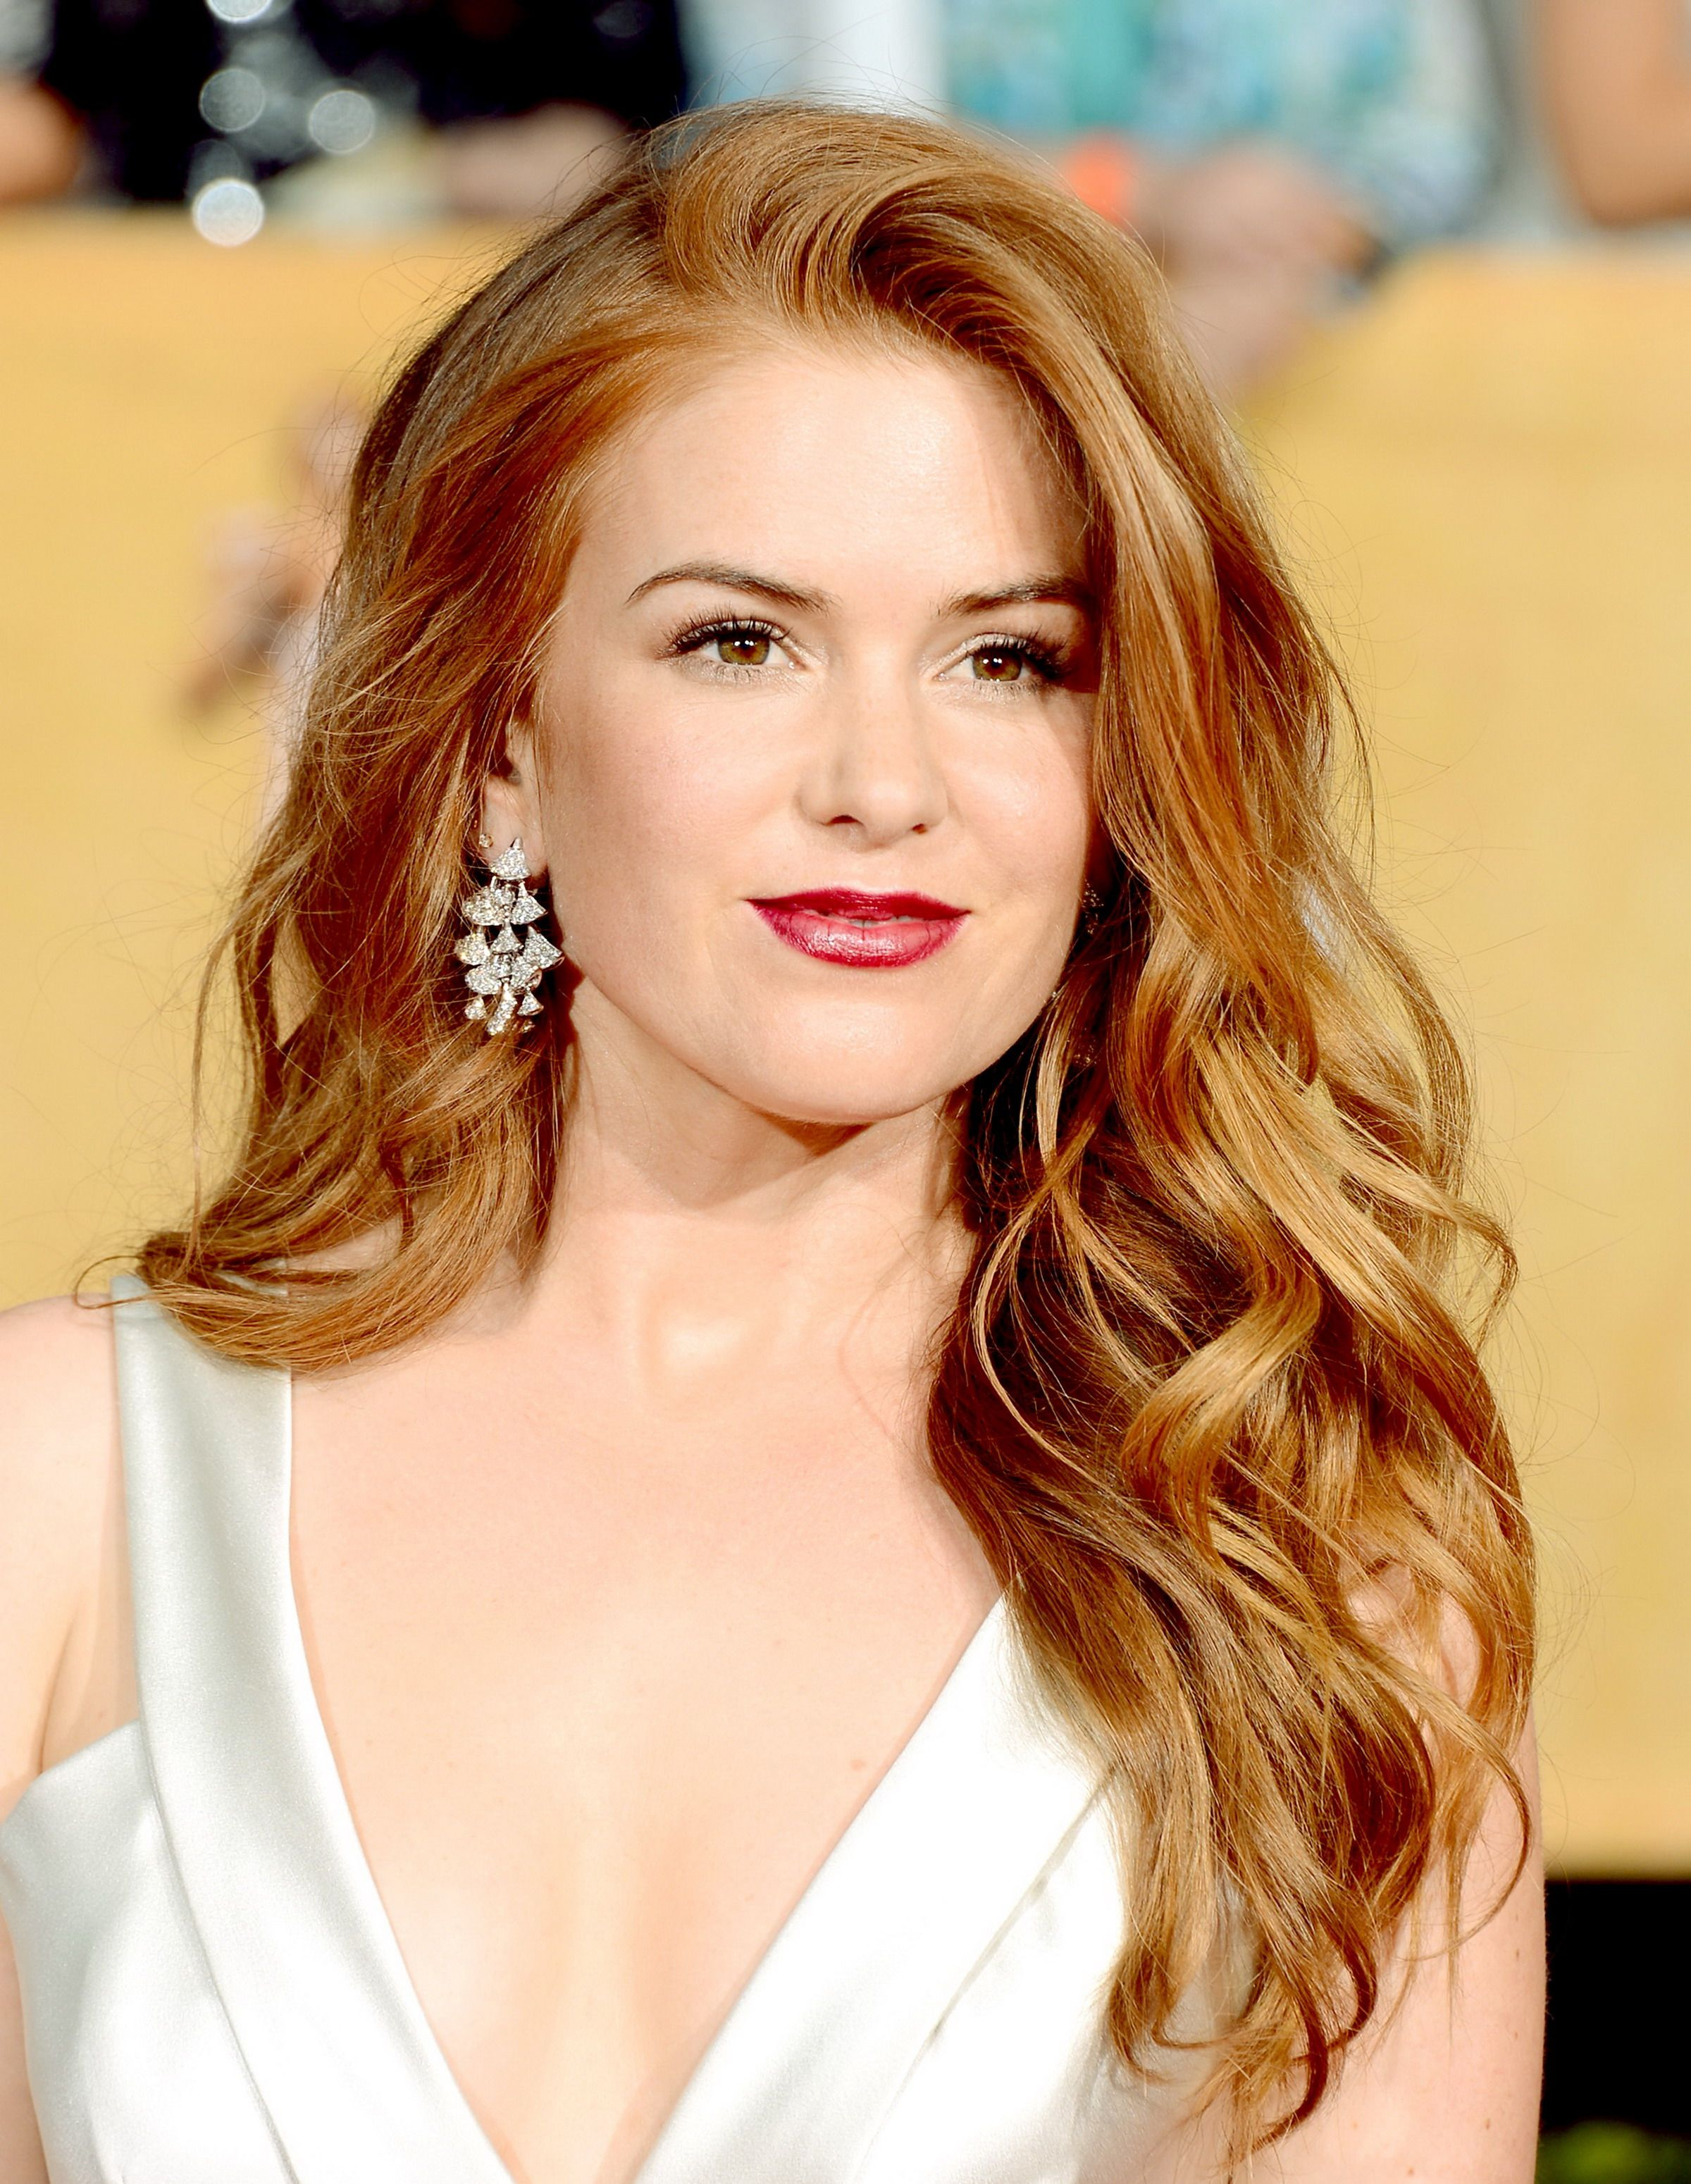 Color and waves fashionable long hairstyles for womeng